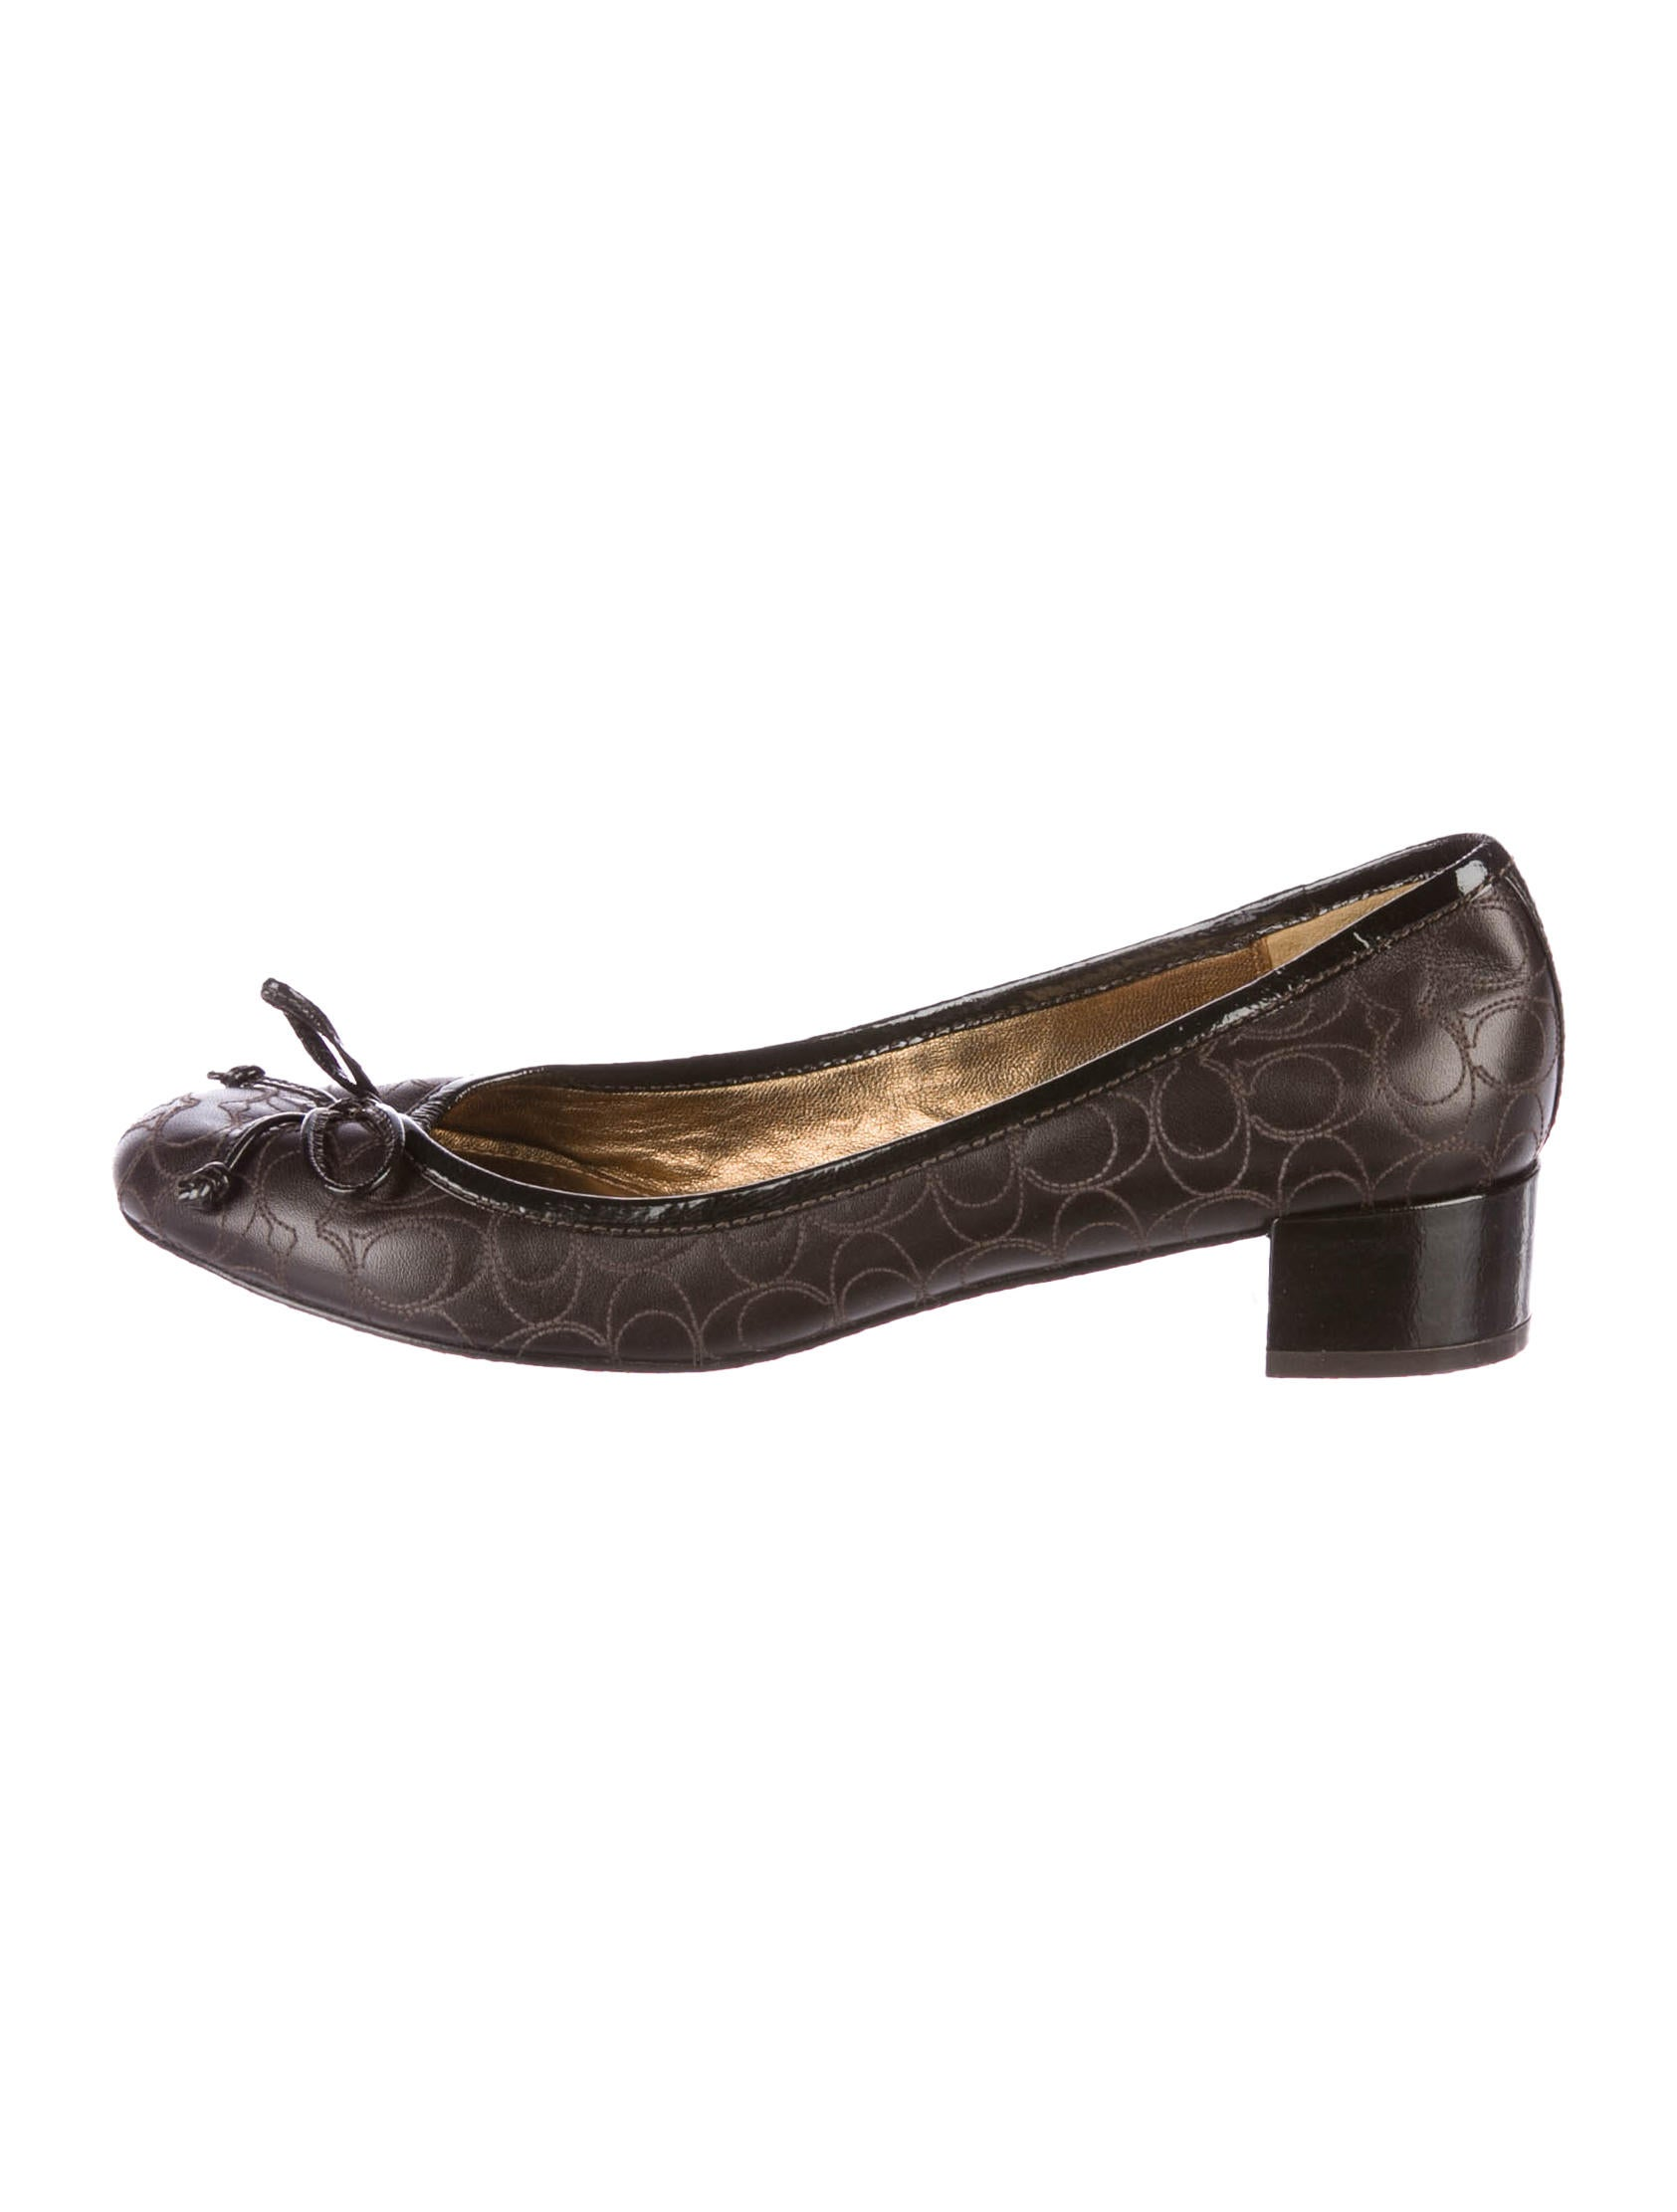 Coach Odette Embroidered Pumps buy cheap with credit card yTn6M